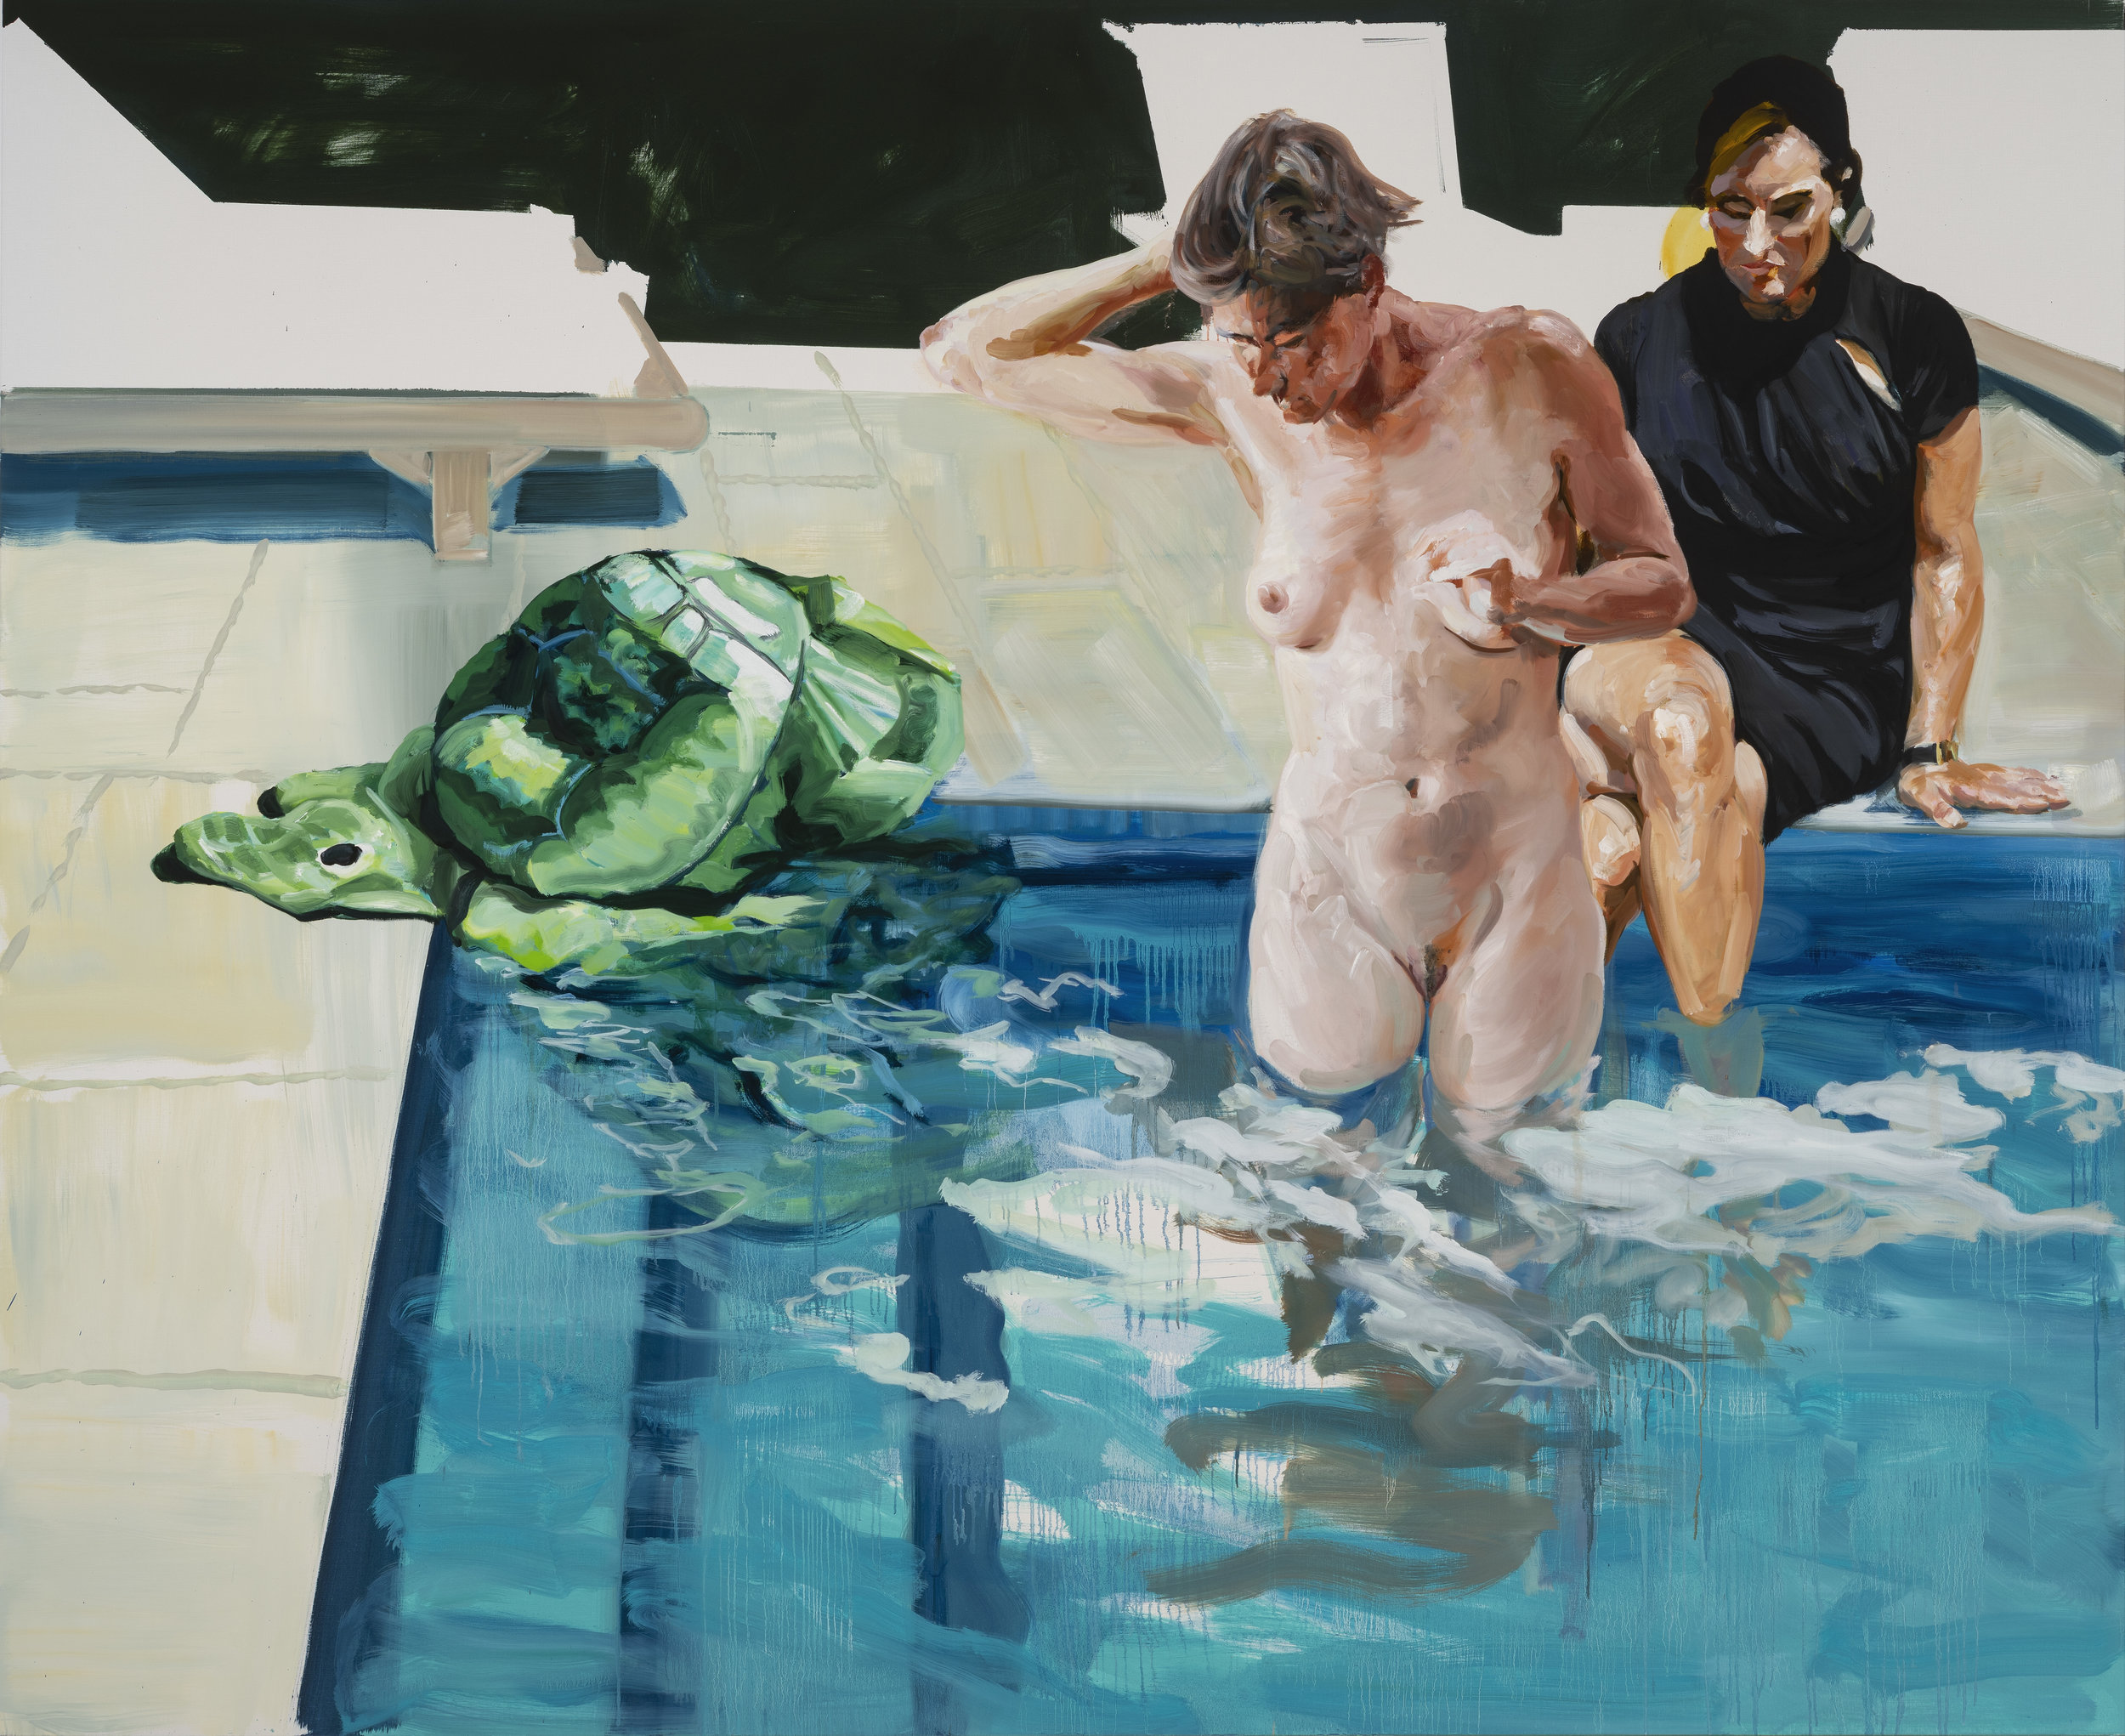 Something Lost 2018. Oil on Linen. 80 x 98 inches